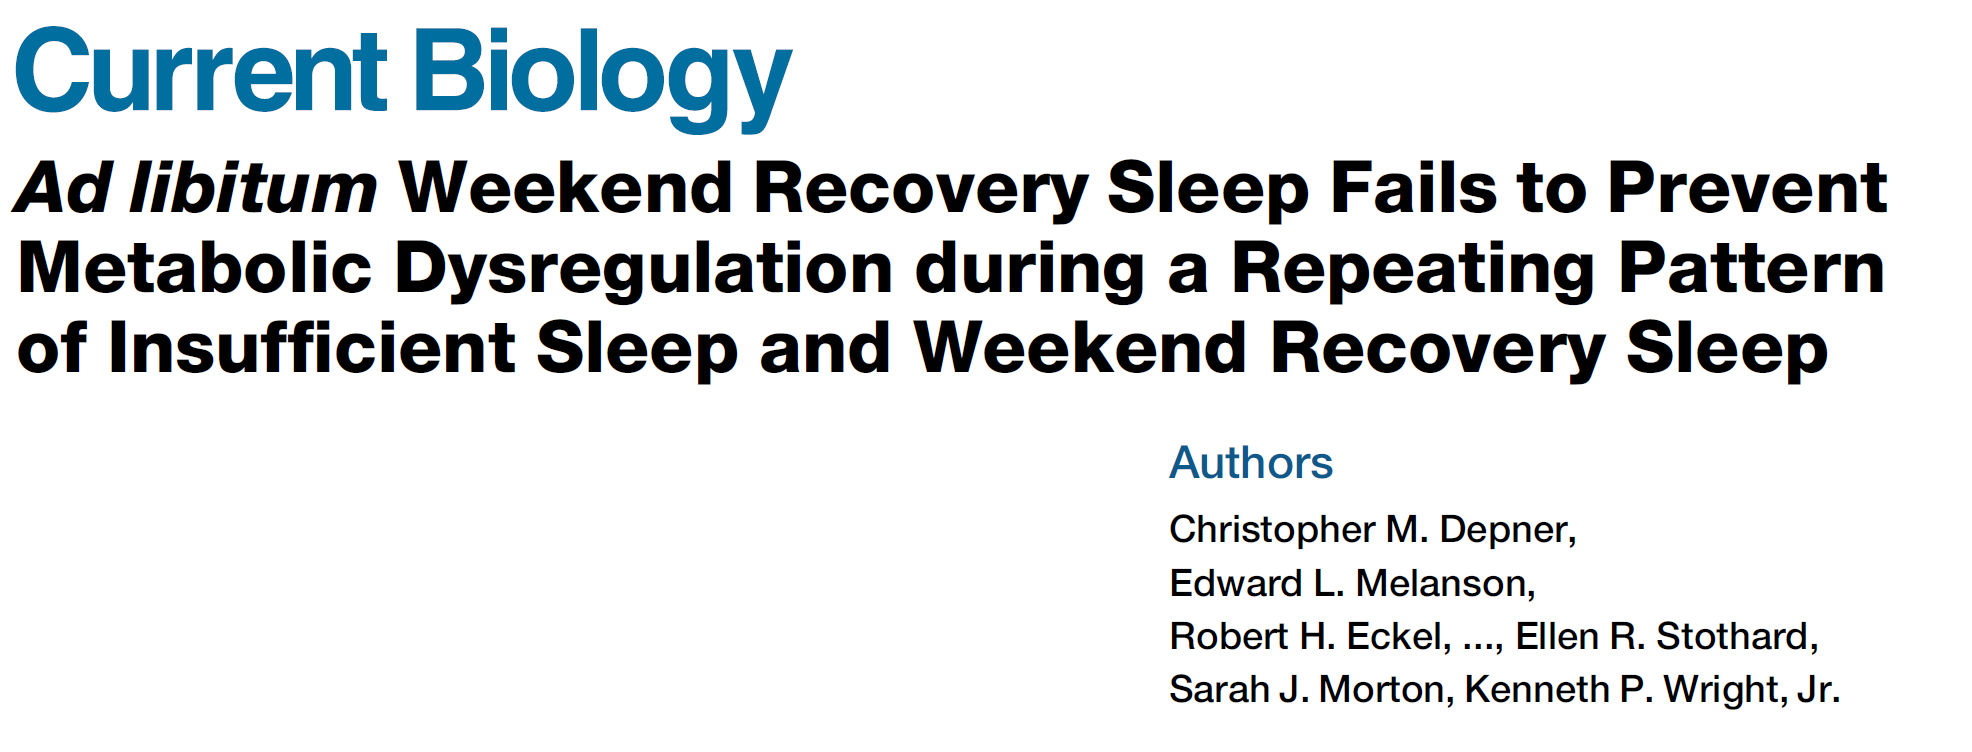 Ad libitum Weekend Recovery Sleep Fails to Prevent Metabolic Dysregulation during a Repeating Pattern of Insufficient Sleep and Weekend Recovery Sleep